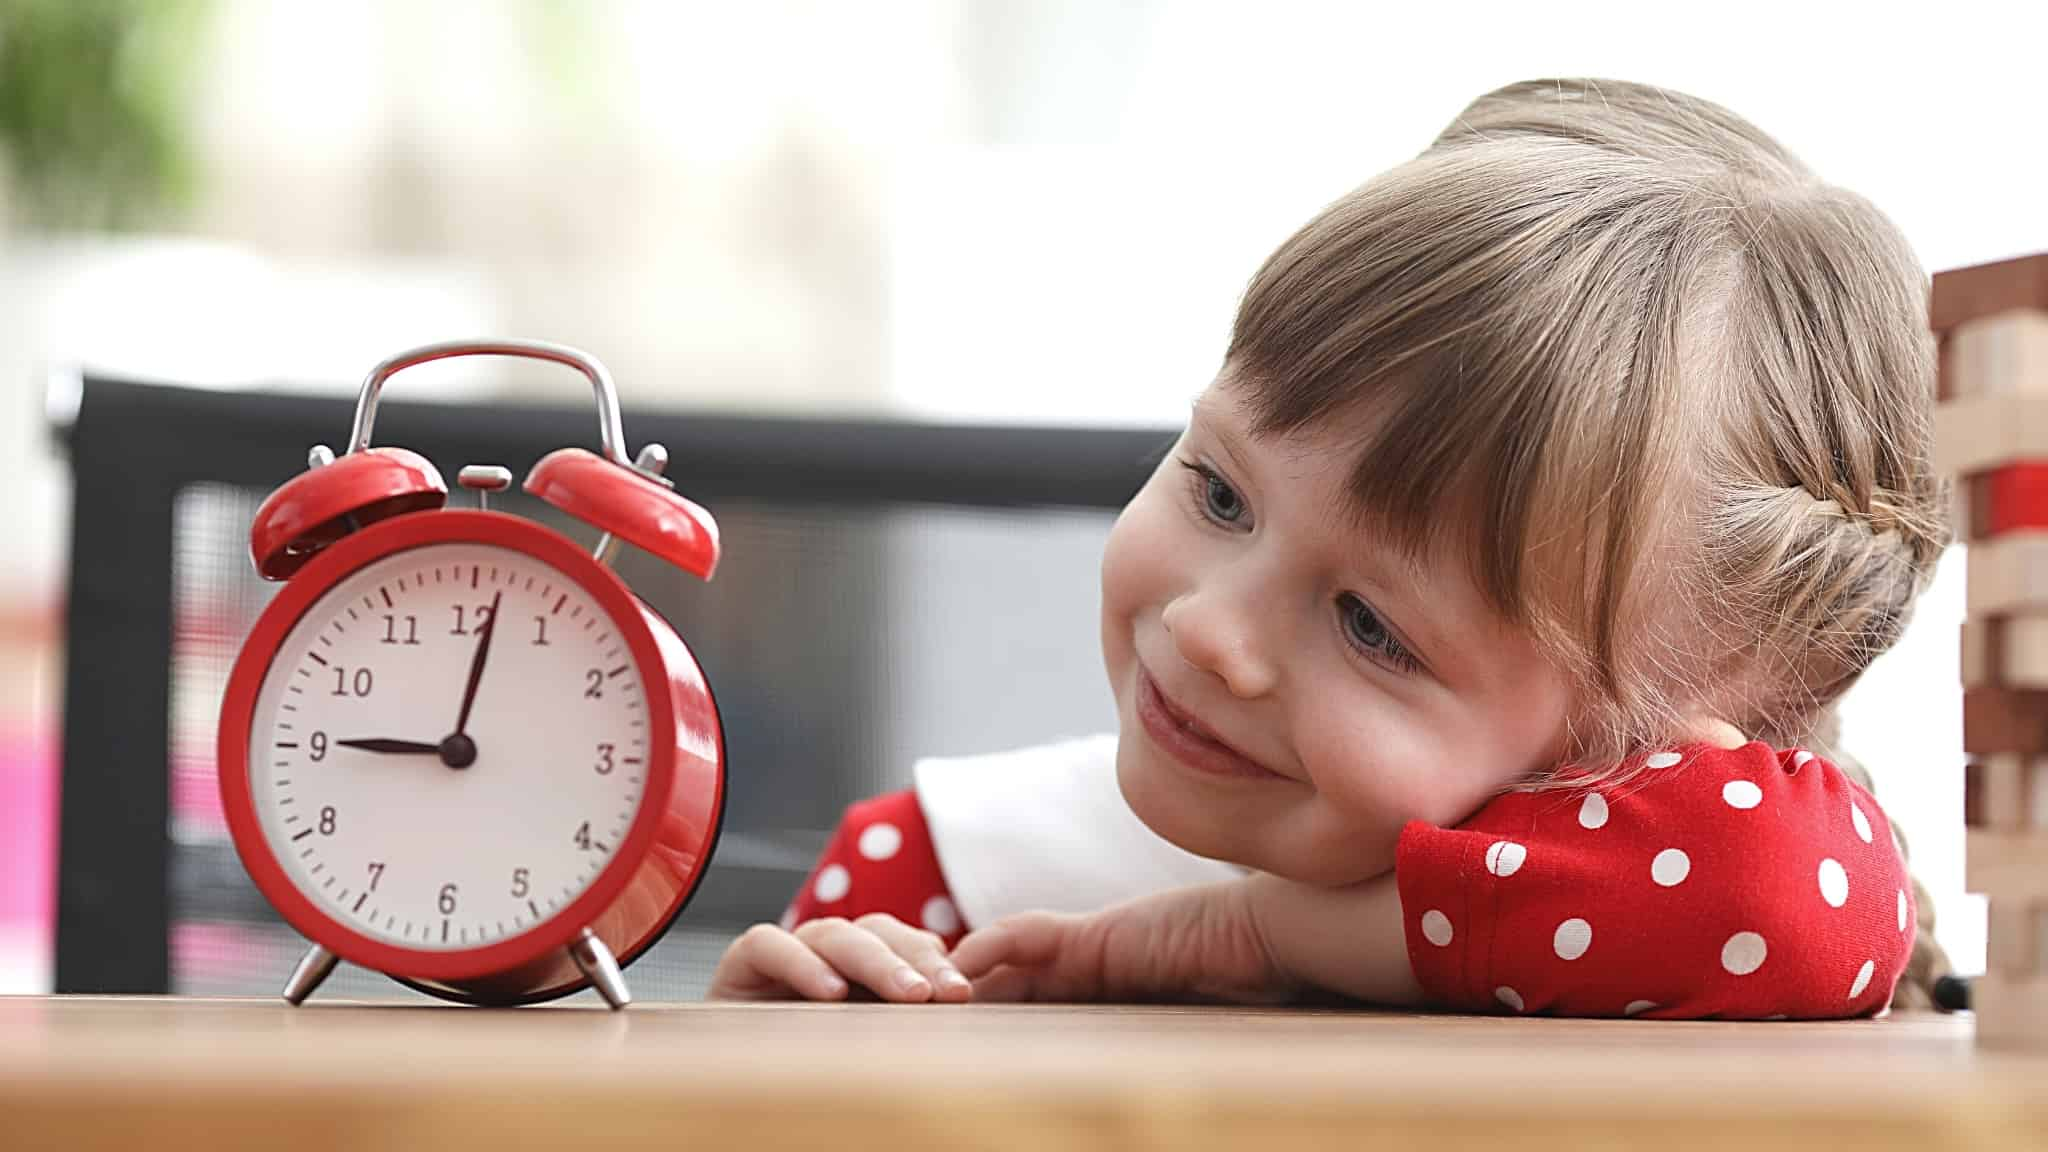 From when can a child tell the time